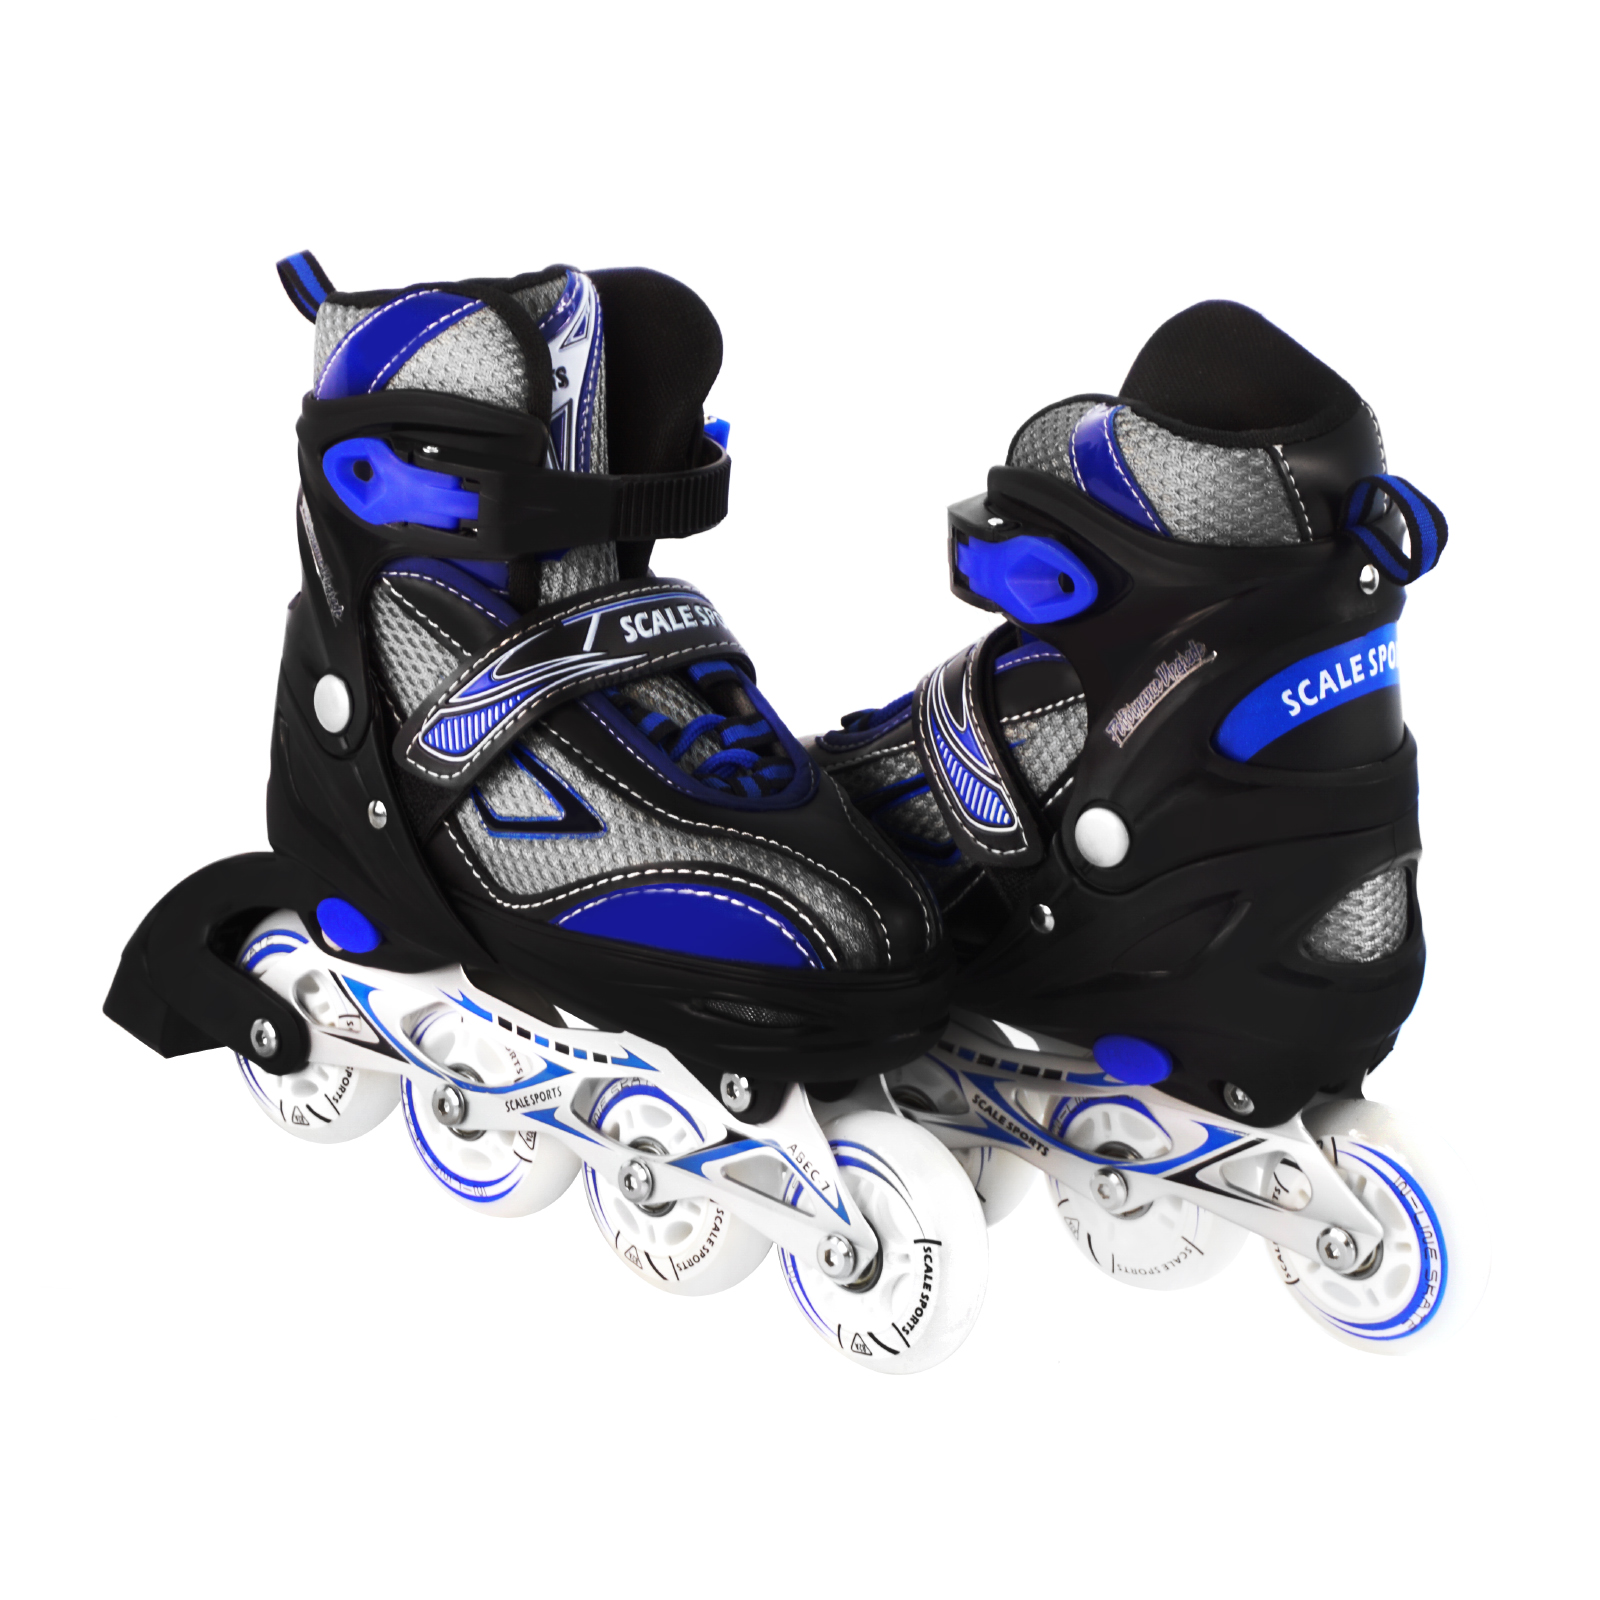 Kids/Teen Adjustable Inline Skates For Girls and Boys Durable Outdoor Illuminating Front Wheel, Blue